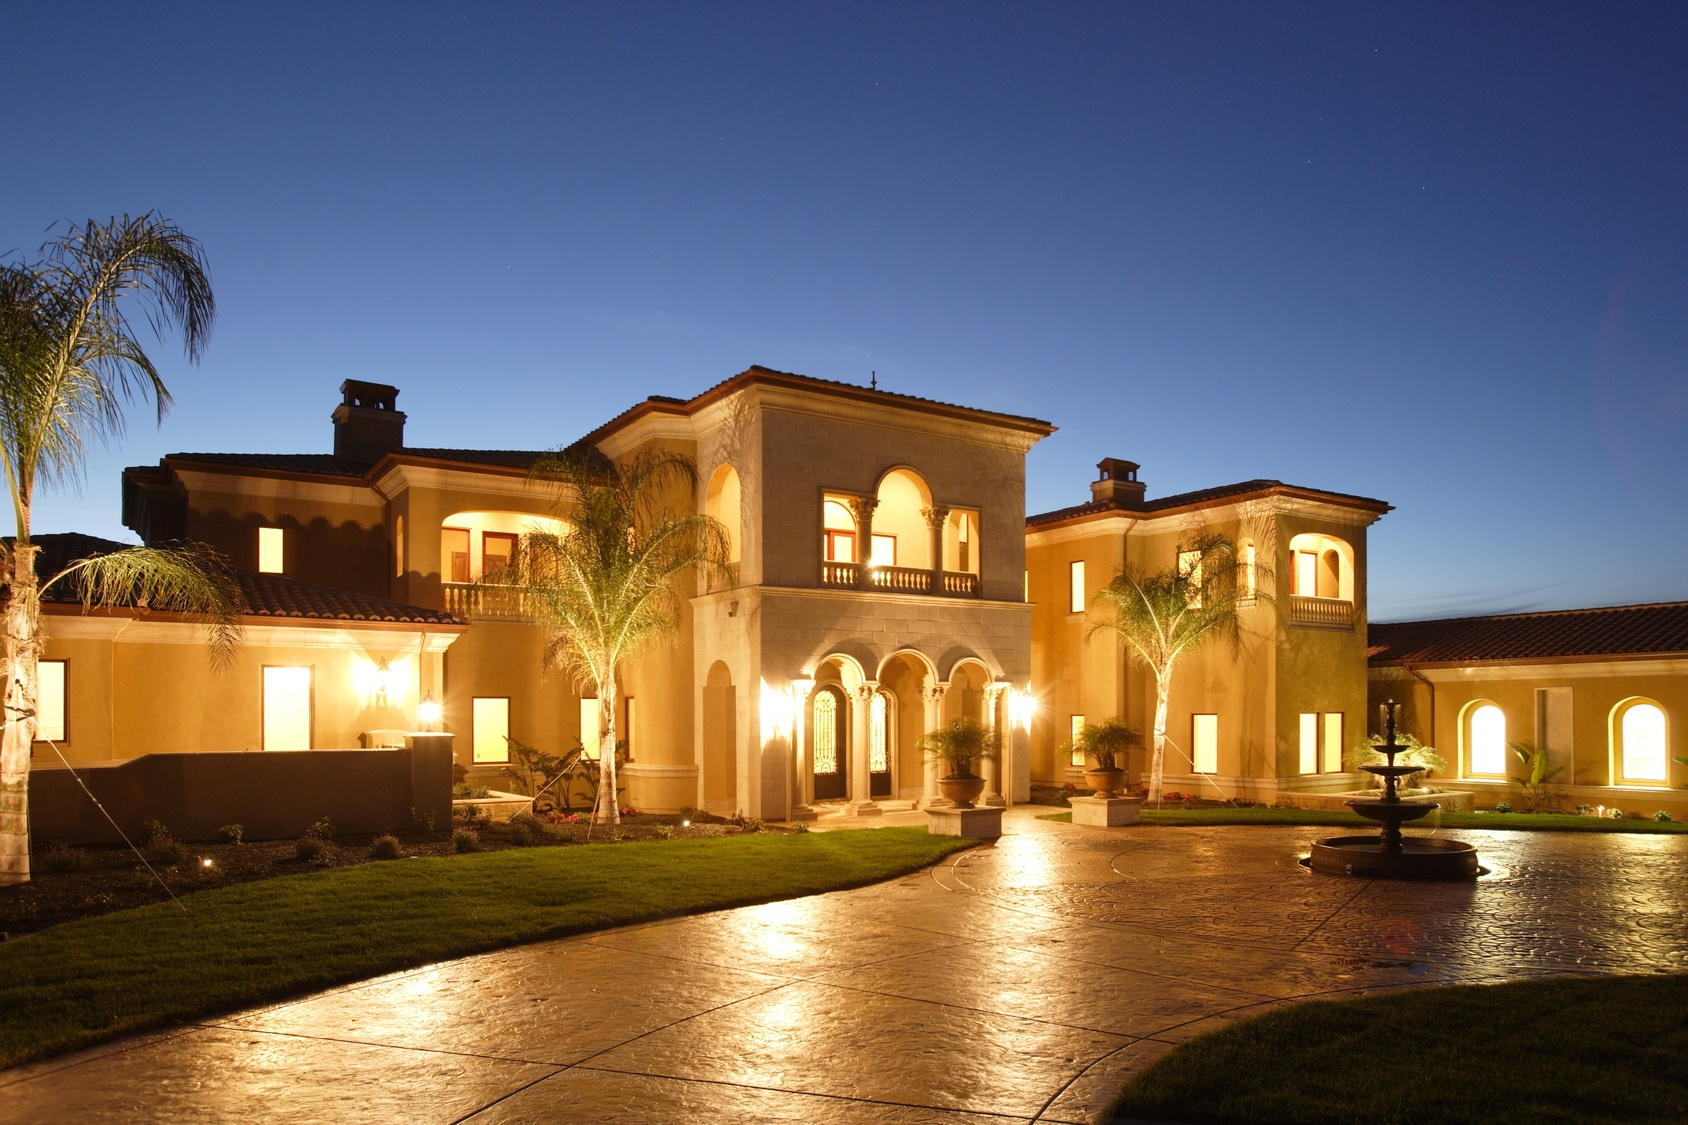 Orlando area home styles mediterranean villas to high Mediterranean homes for sale